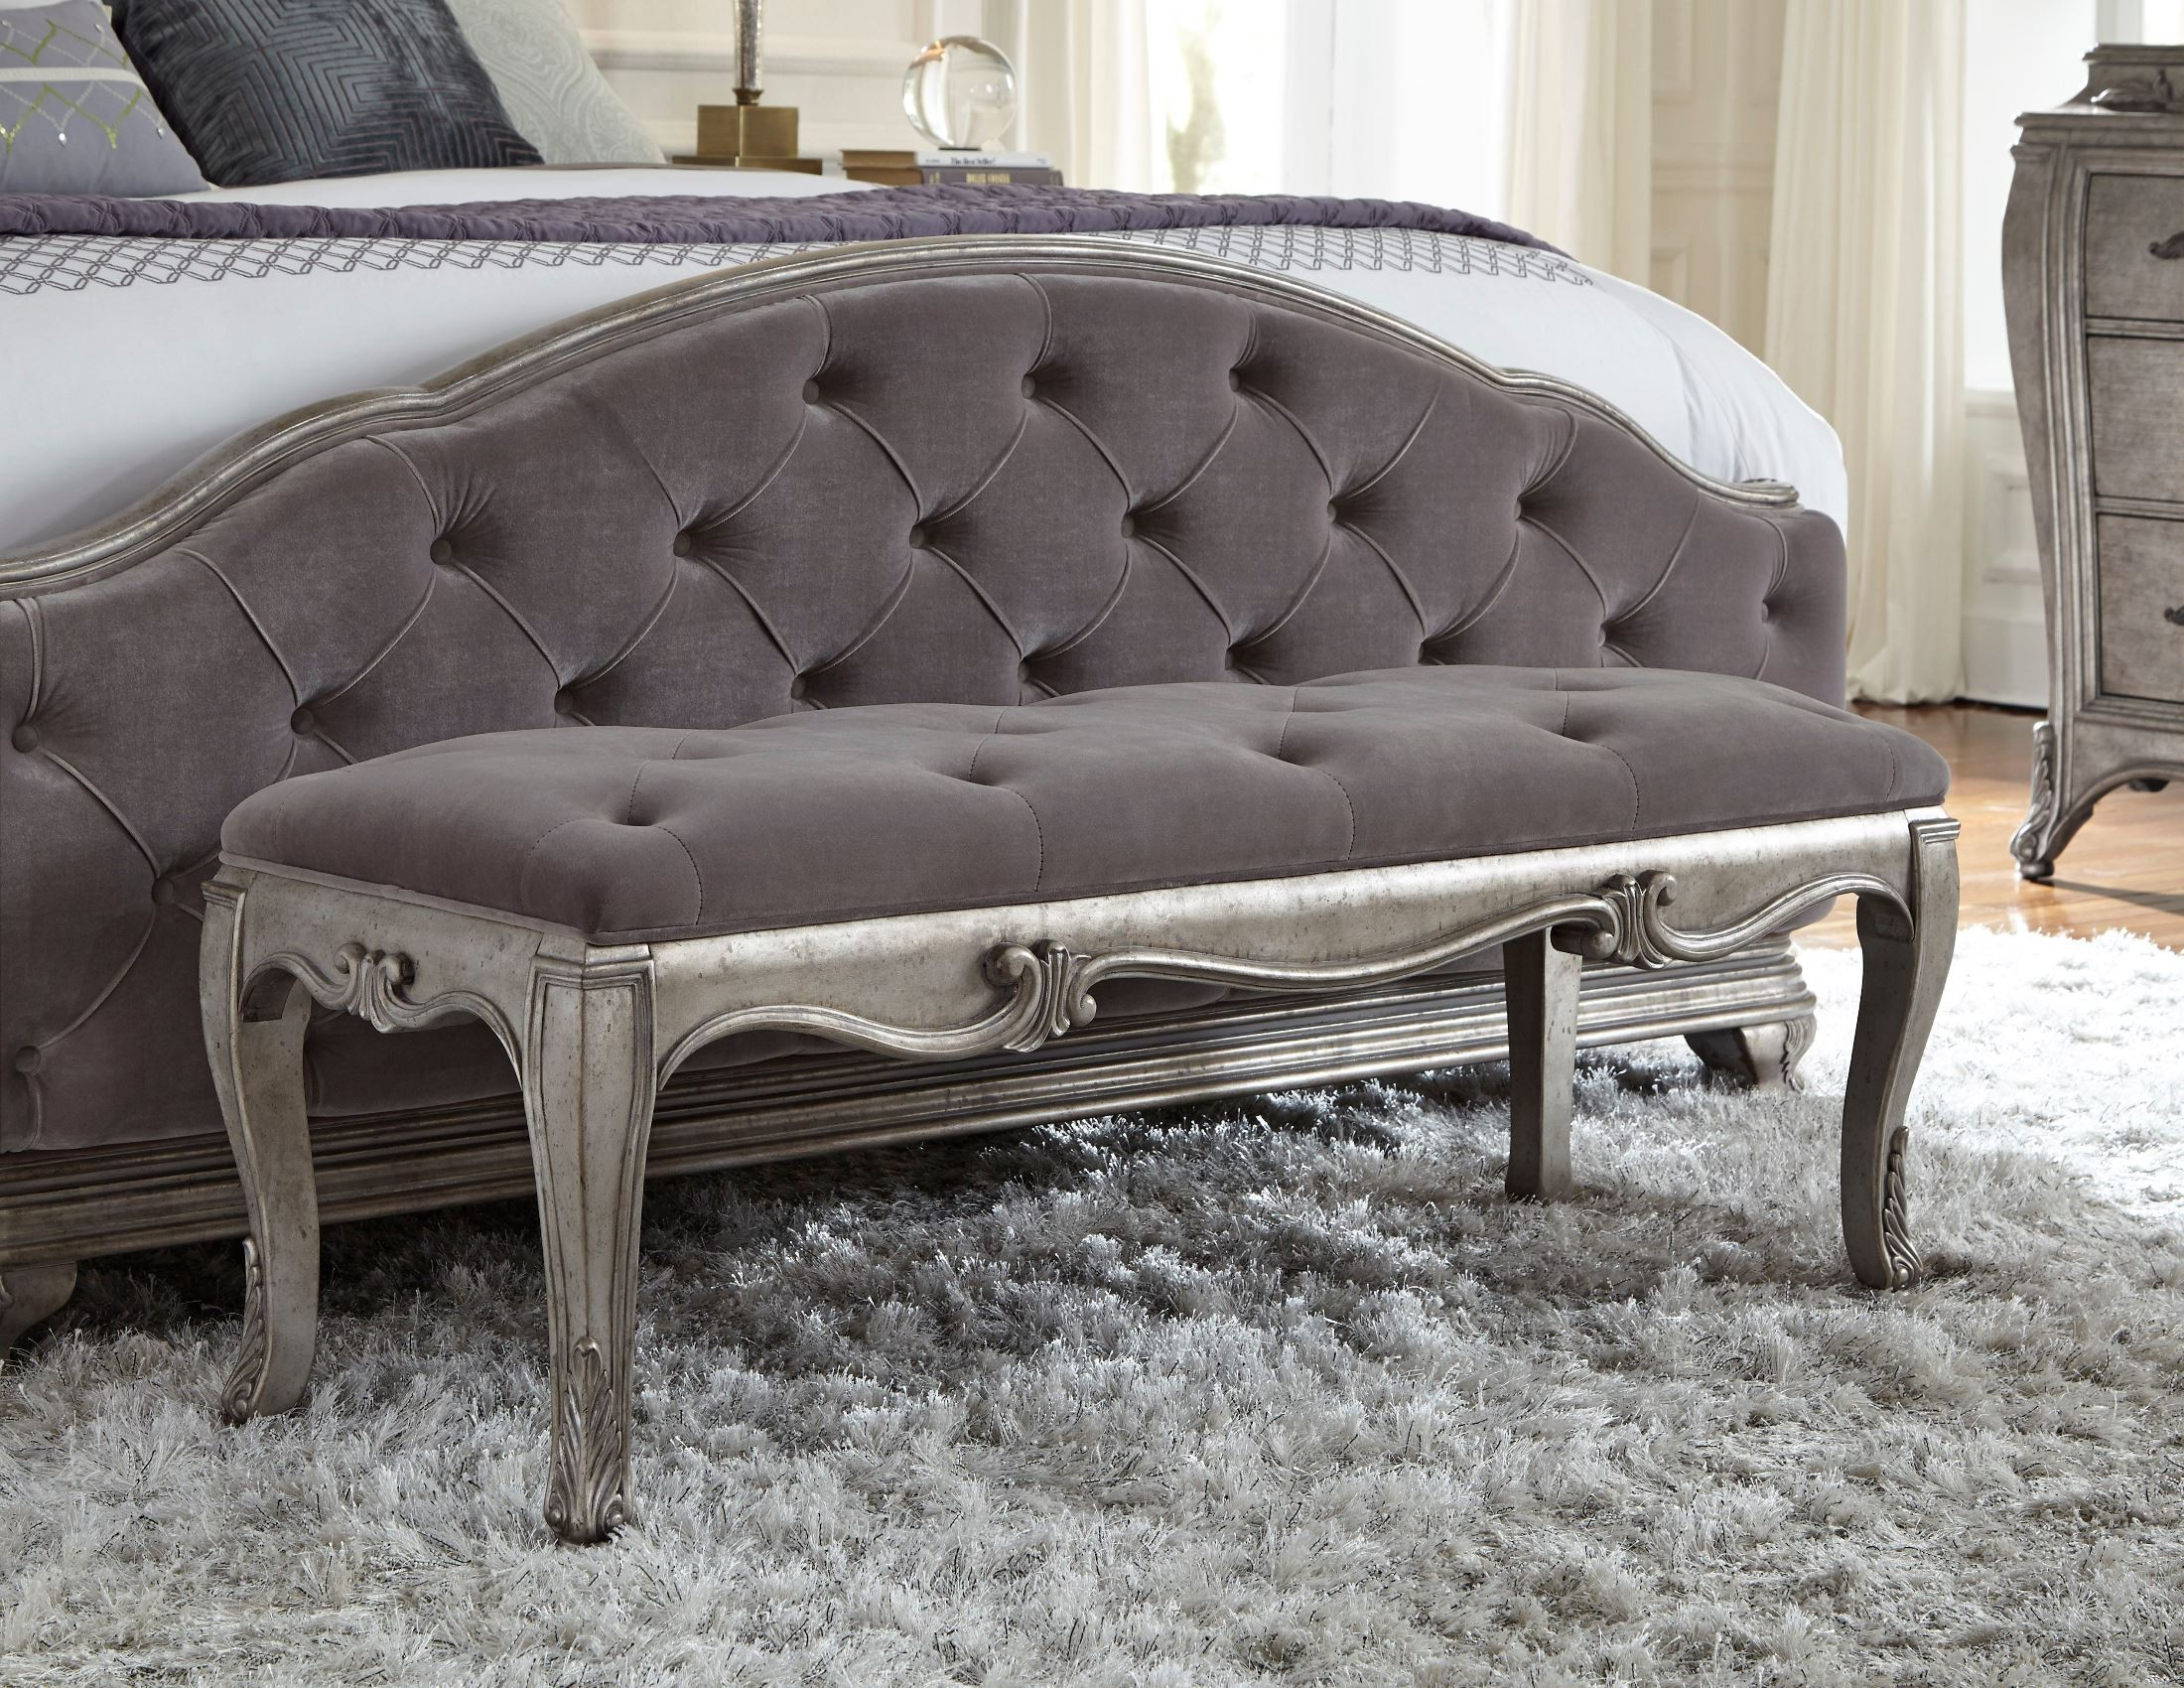 Bench By Bed: Rhianna Silver Patina Bed Bench